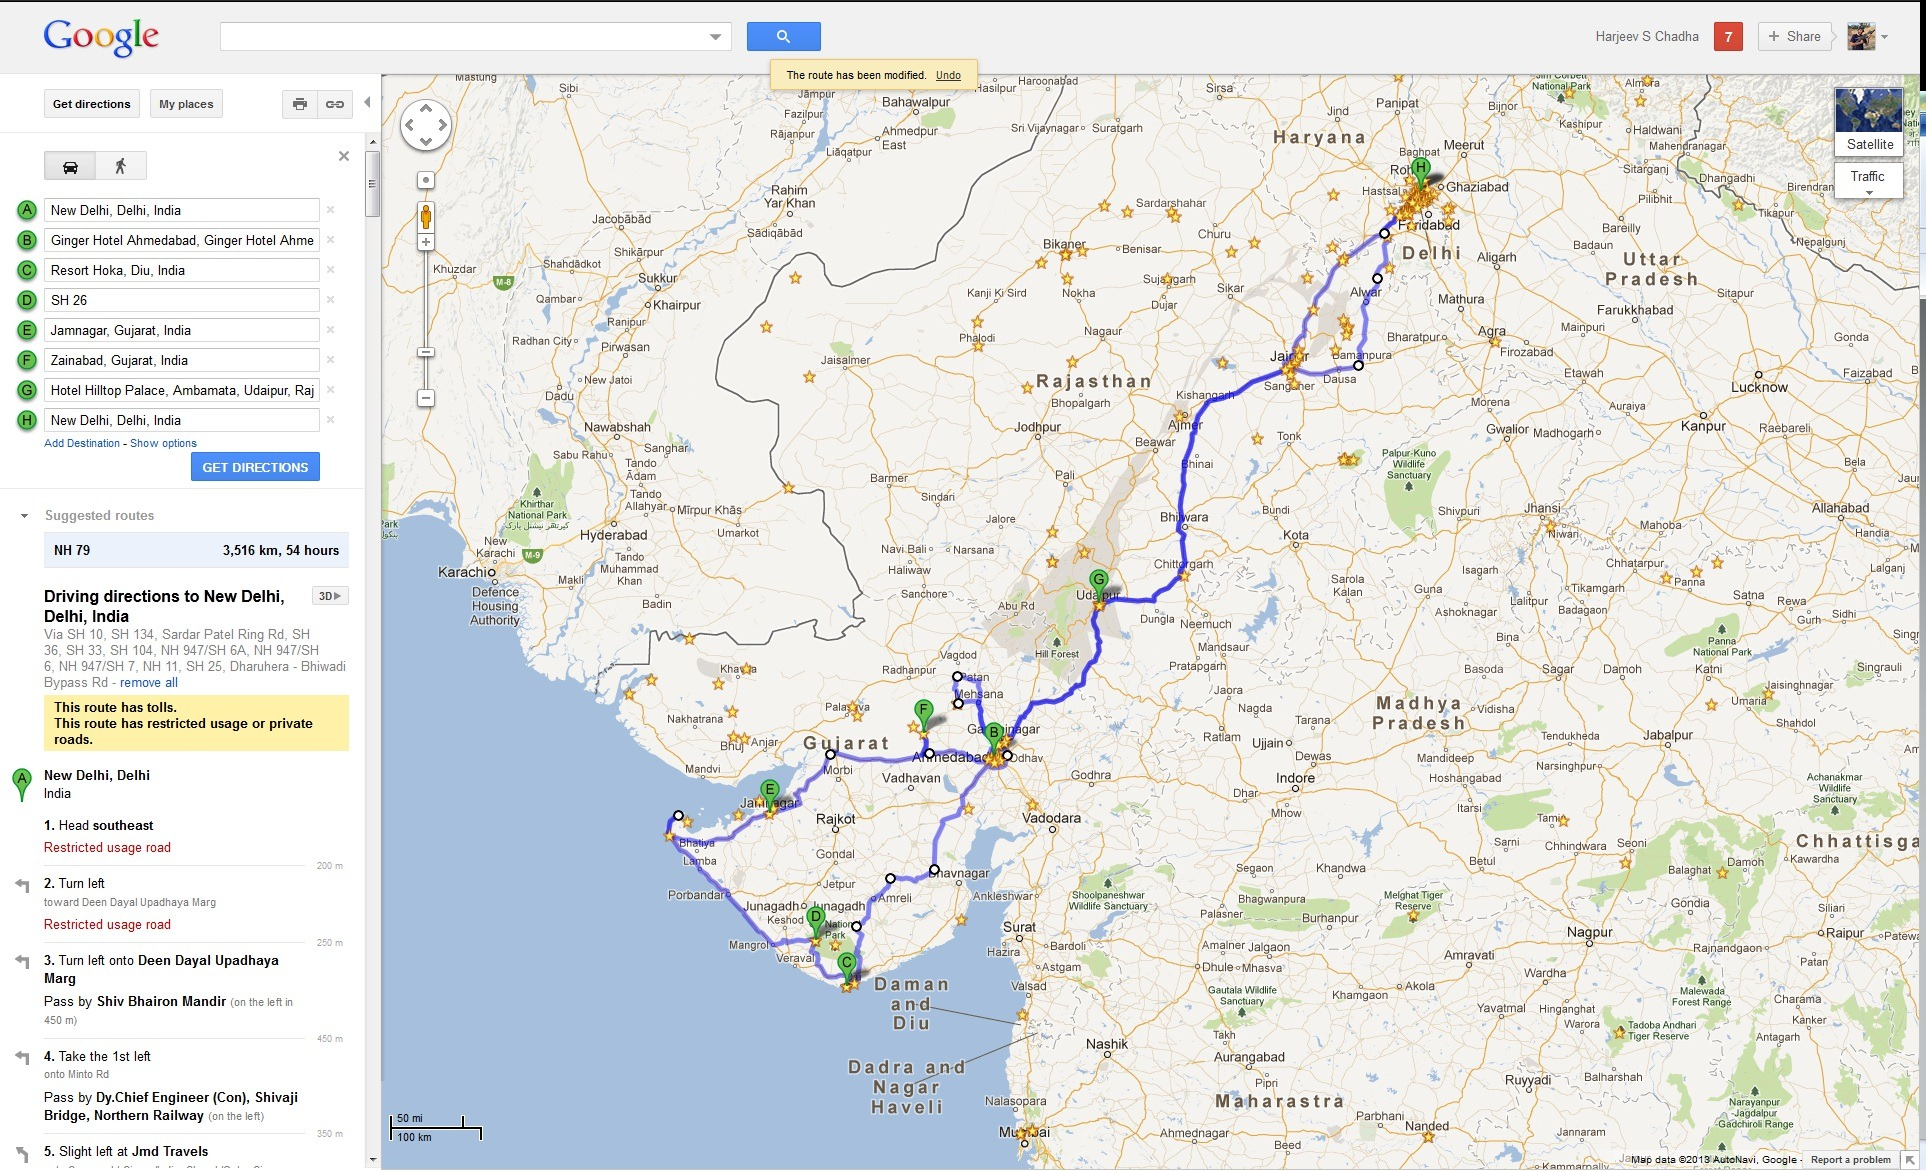 Detailed Road Map of Rajasthan